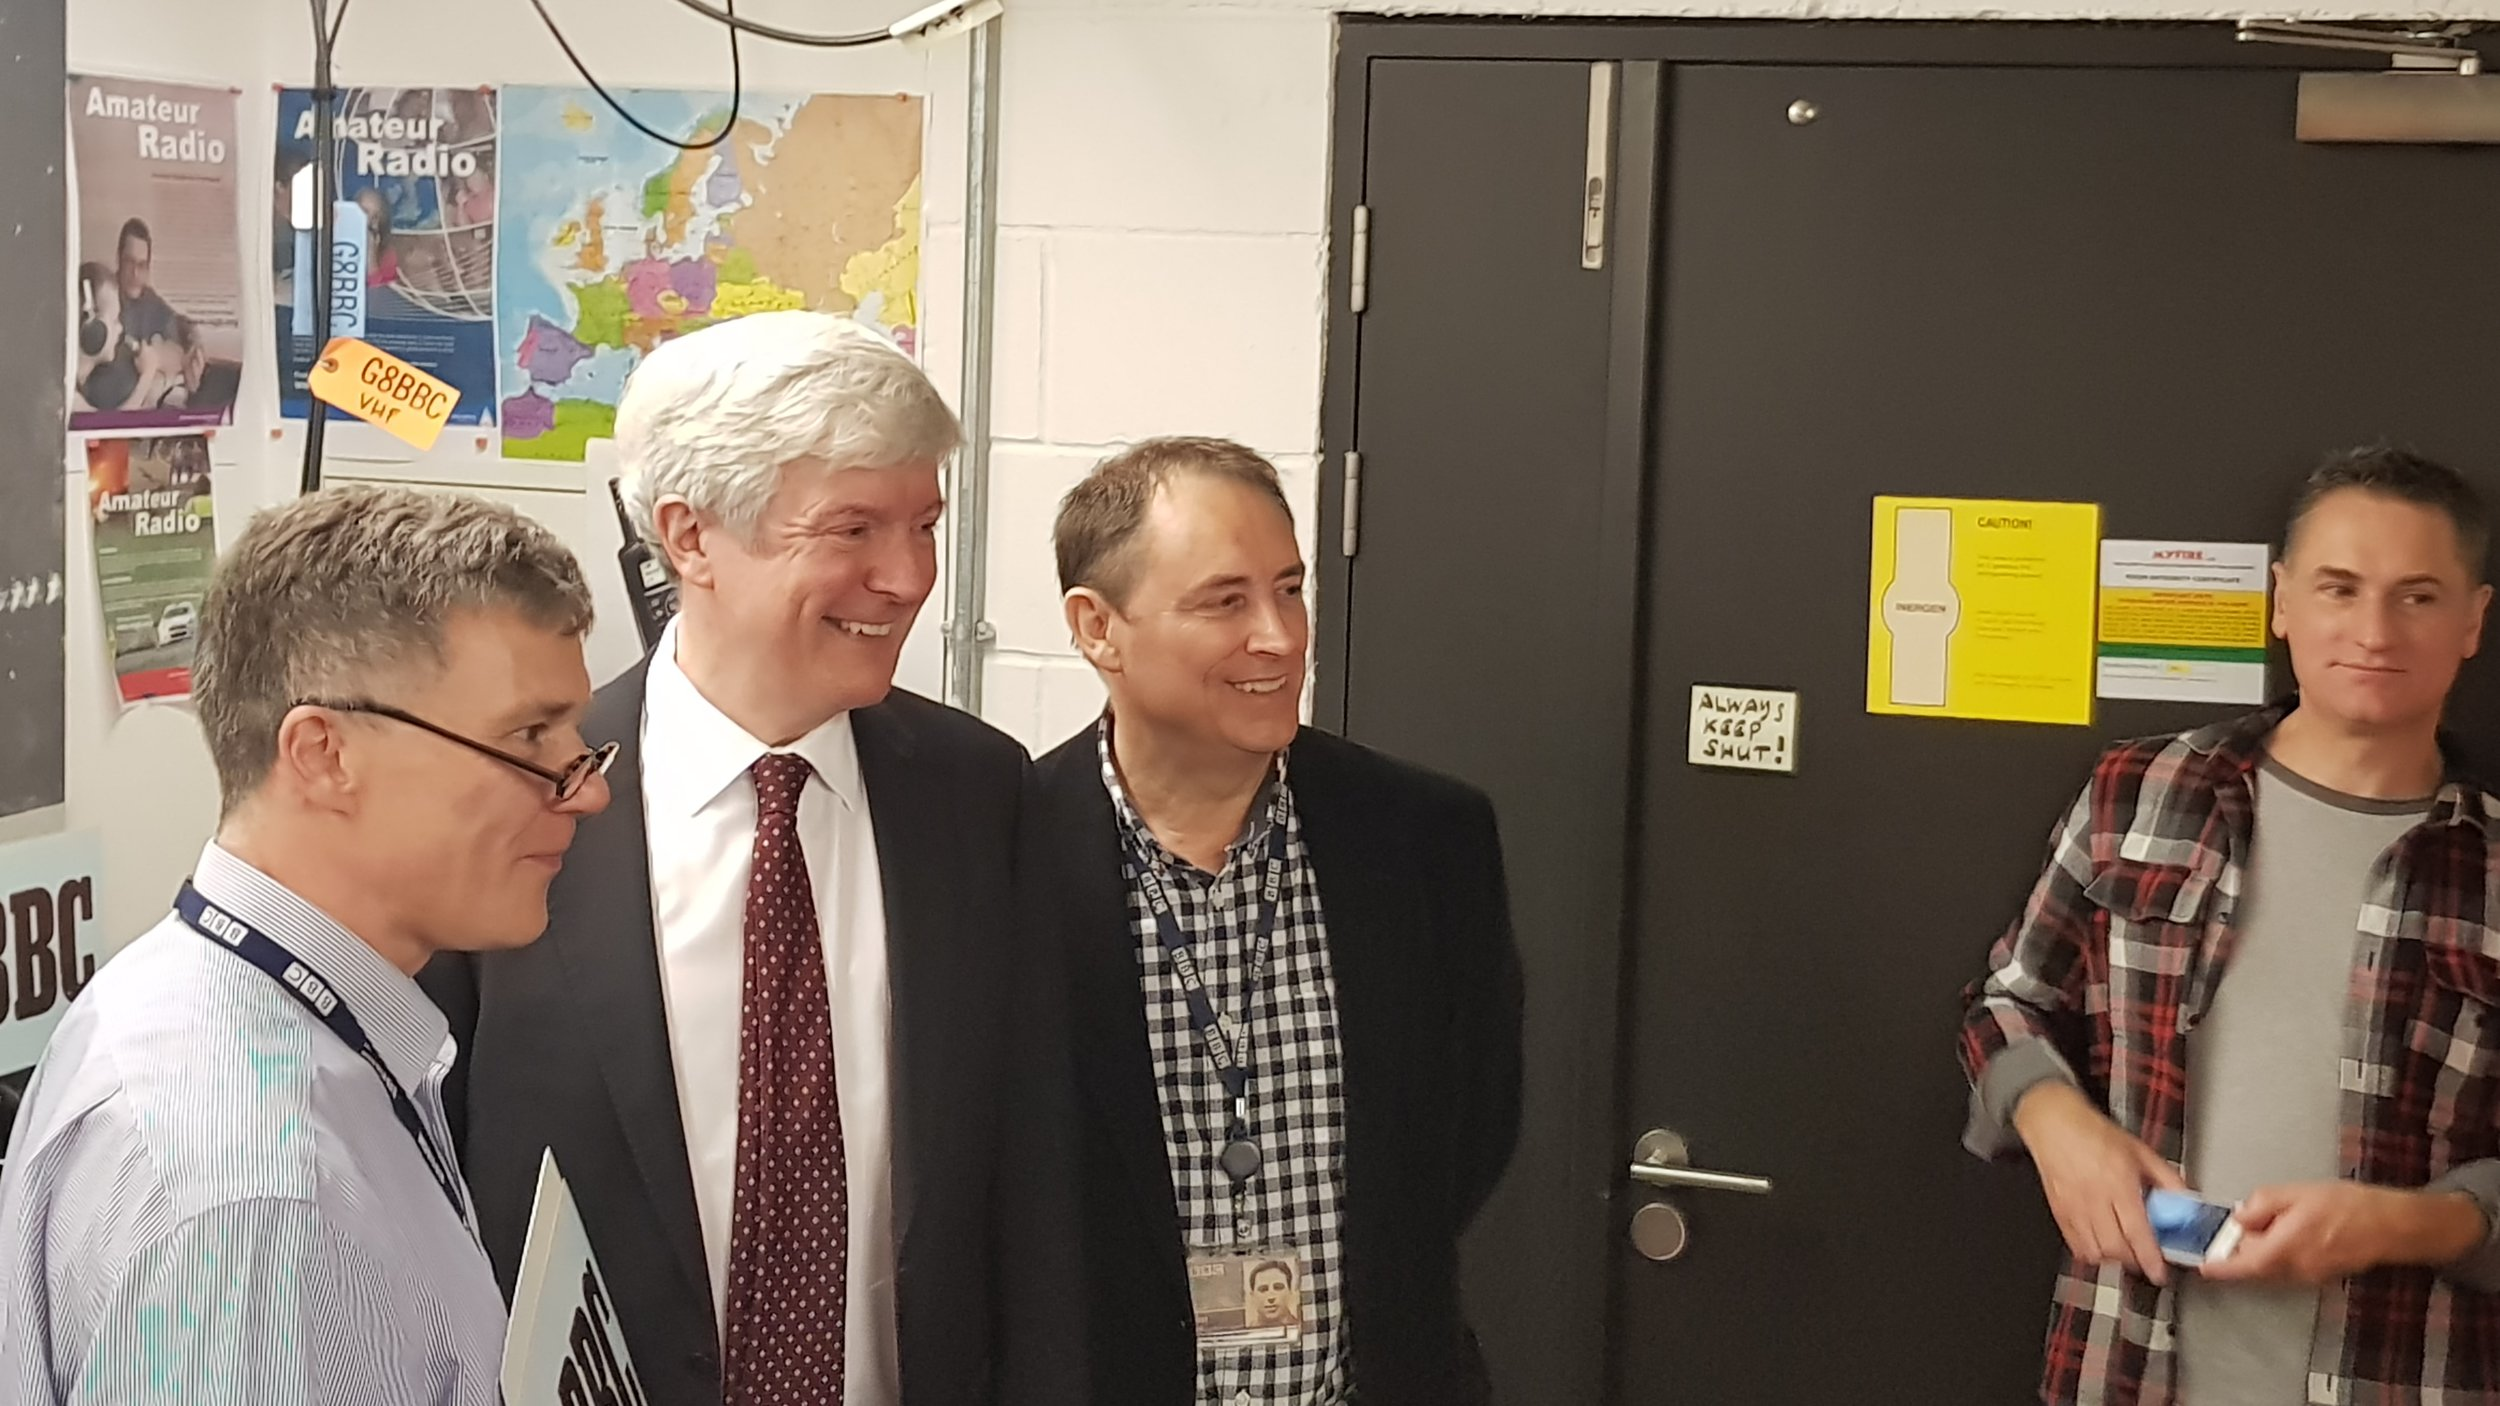 BBC Director General Lord Tony Hall (Centre) alongside Jonathan Kempster (M5AEO) left and Jim Lee, G4AEH,